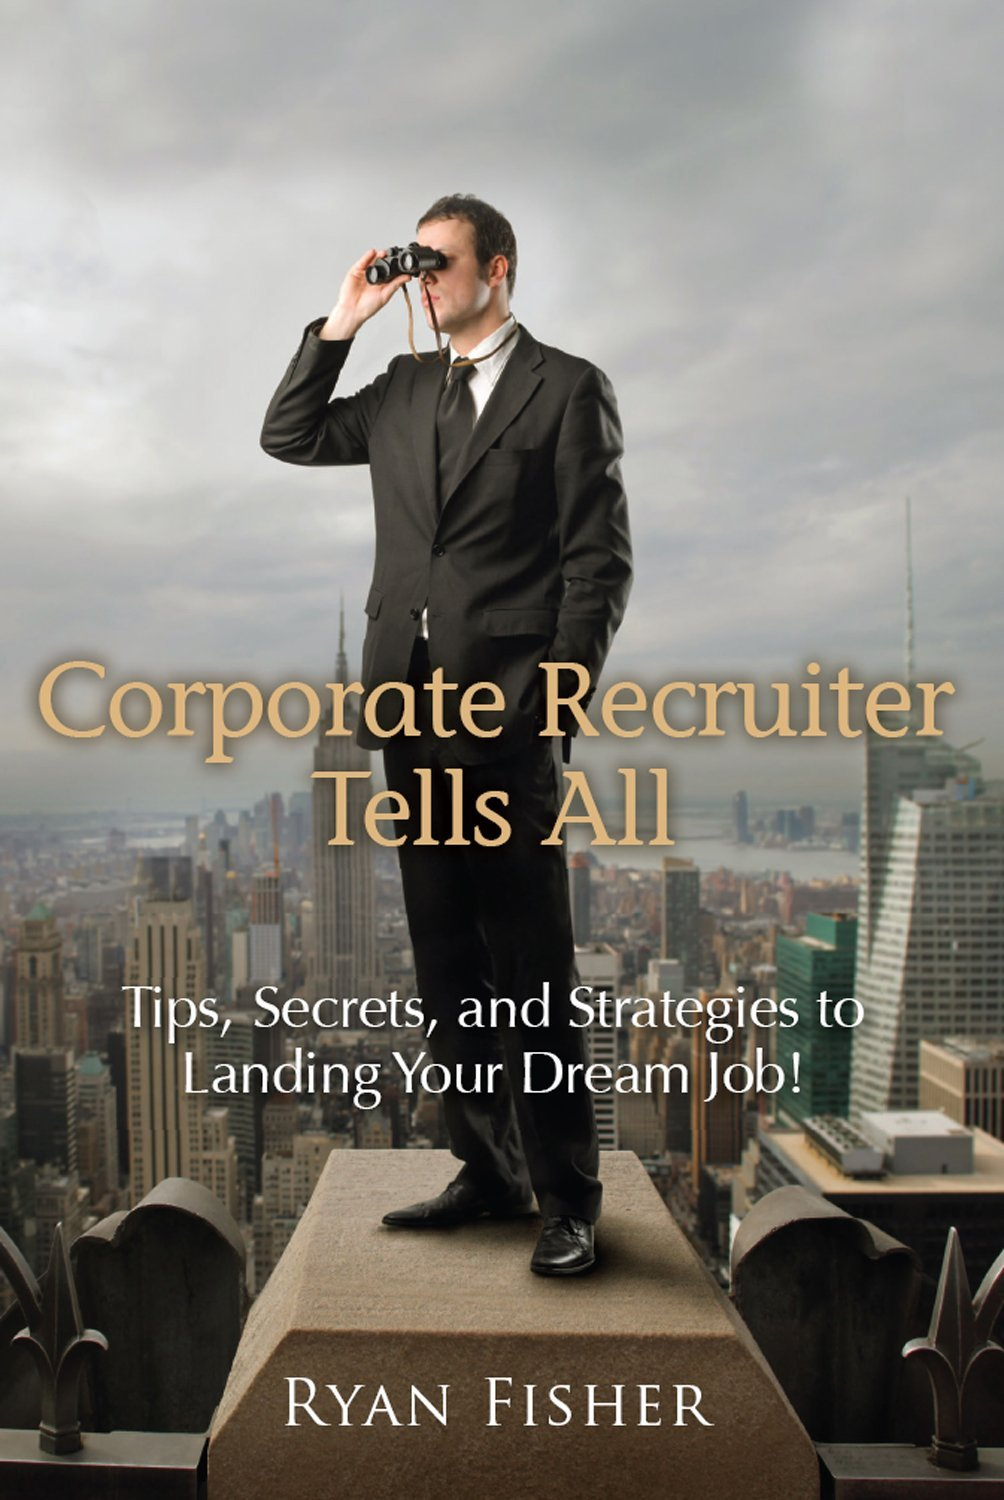 Corporate Recruiter Tells All.jpg